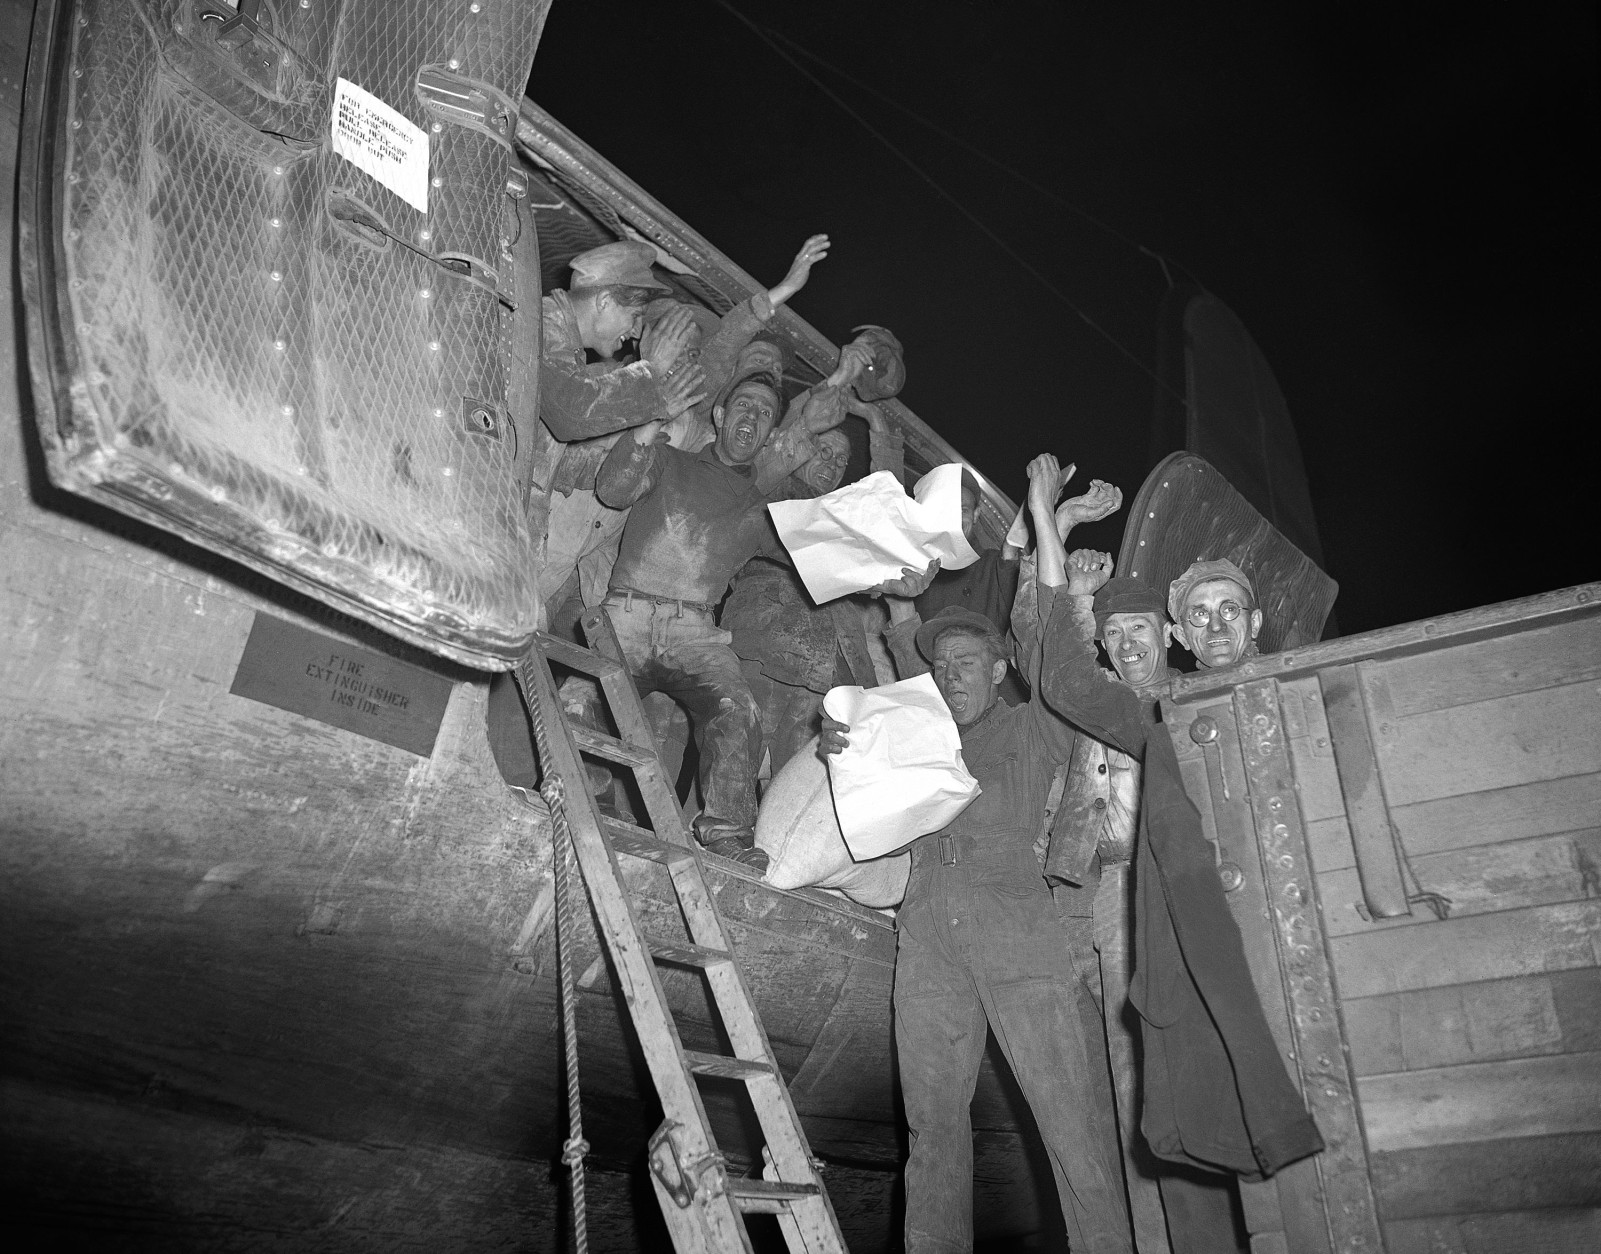 A cargo handling crew at Tempelhof airfield in Berlin pause in their task of unloading a Skymaster plane of the Berlin airlift, May 5, 1949 to raise a cheer over the news of the lifting of the German capital, scheduled for May 12. The airlift, however, is planned to be continued despite the proposed end of the Berlin siege. (AP Photo)